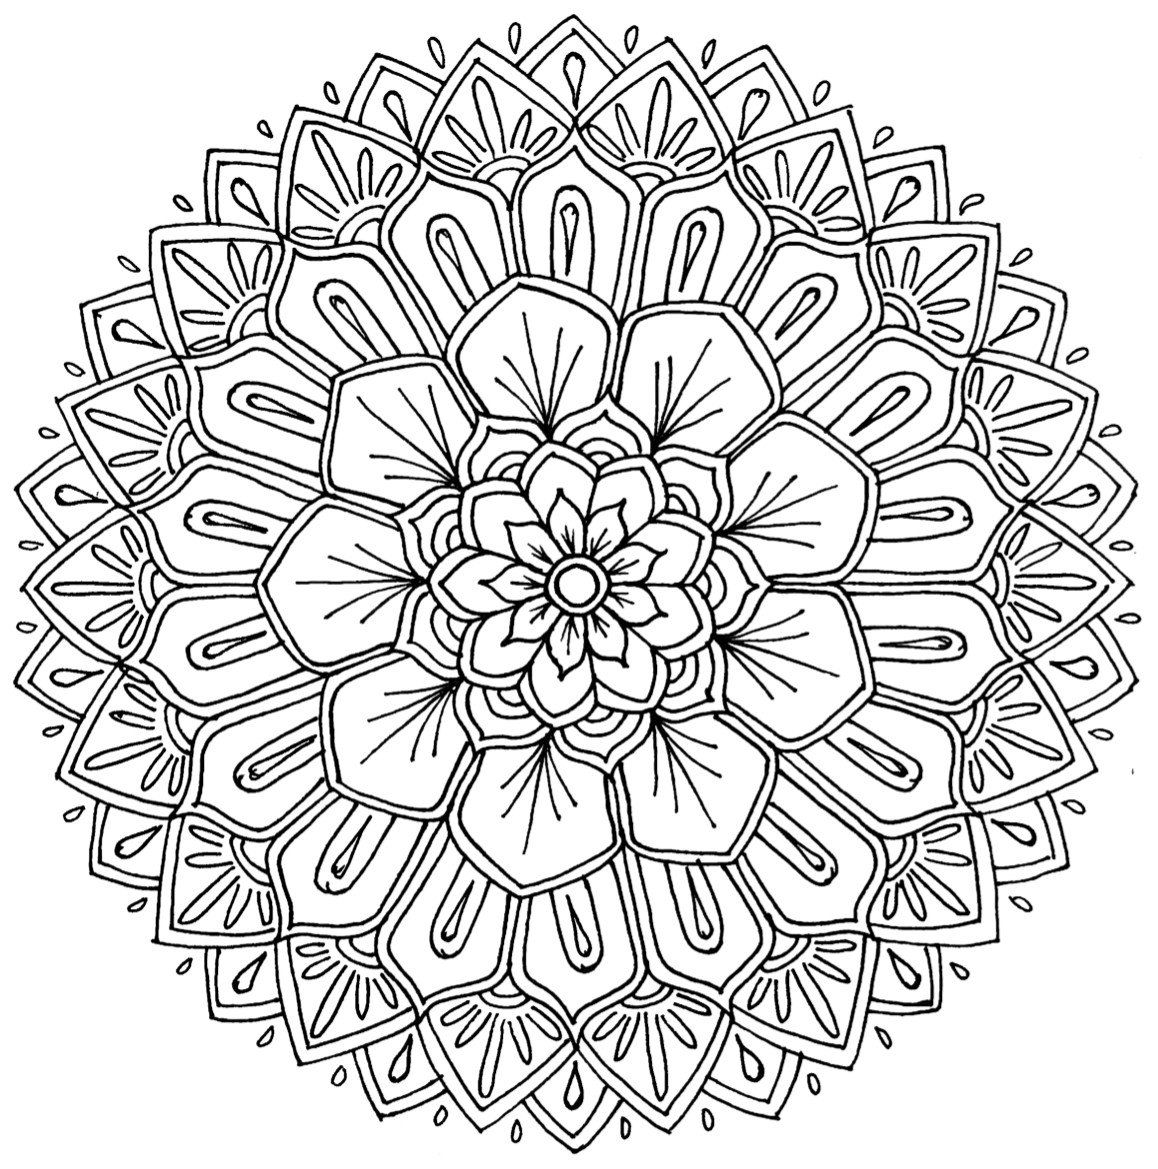 mandala hand coloring pages pin by galina rashkova on mandala art how to draw hands mandala coloring hand pages